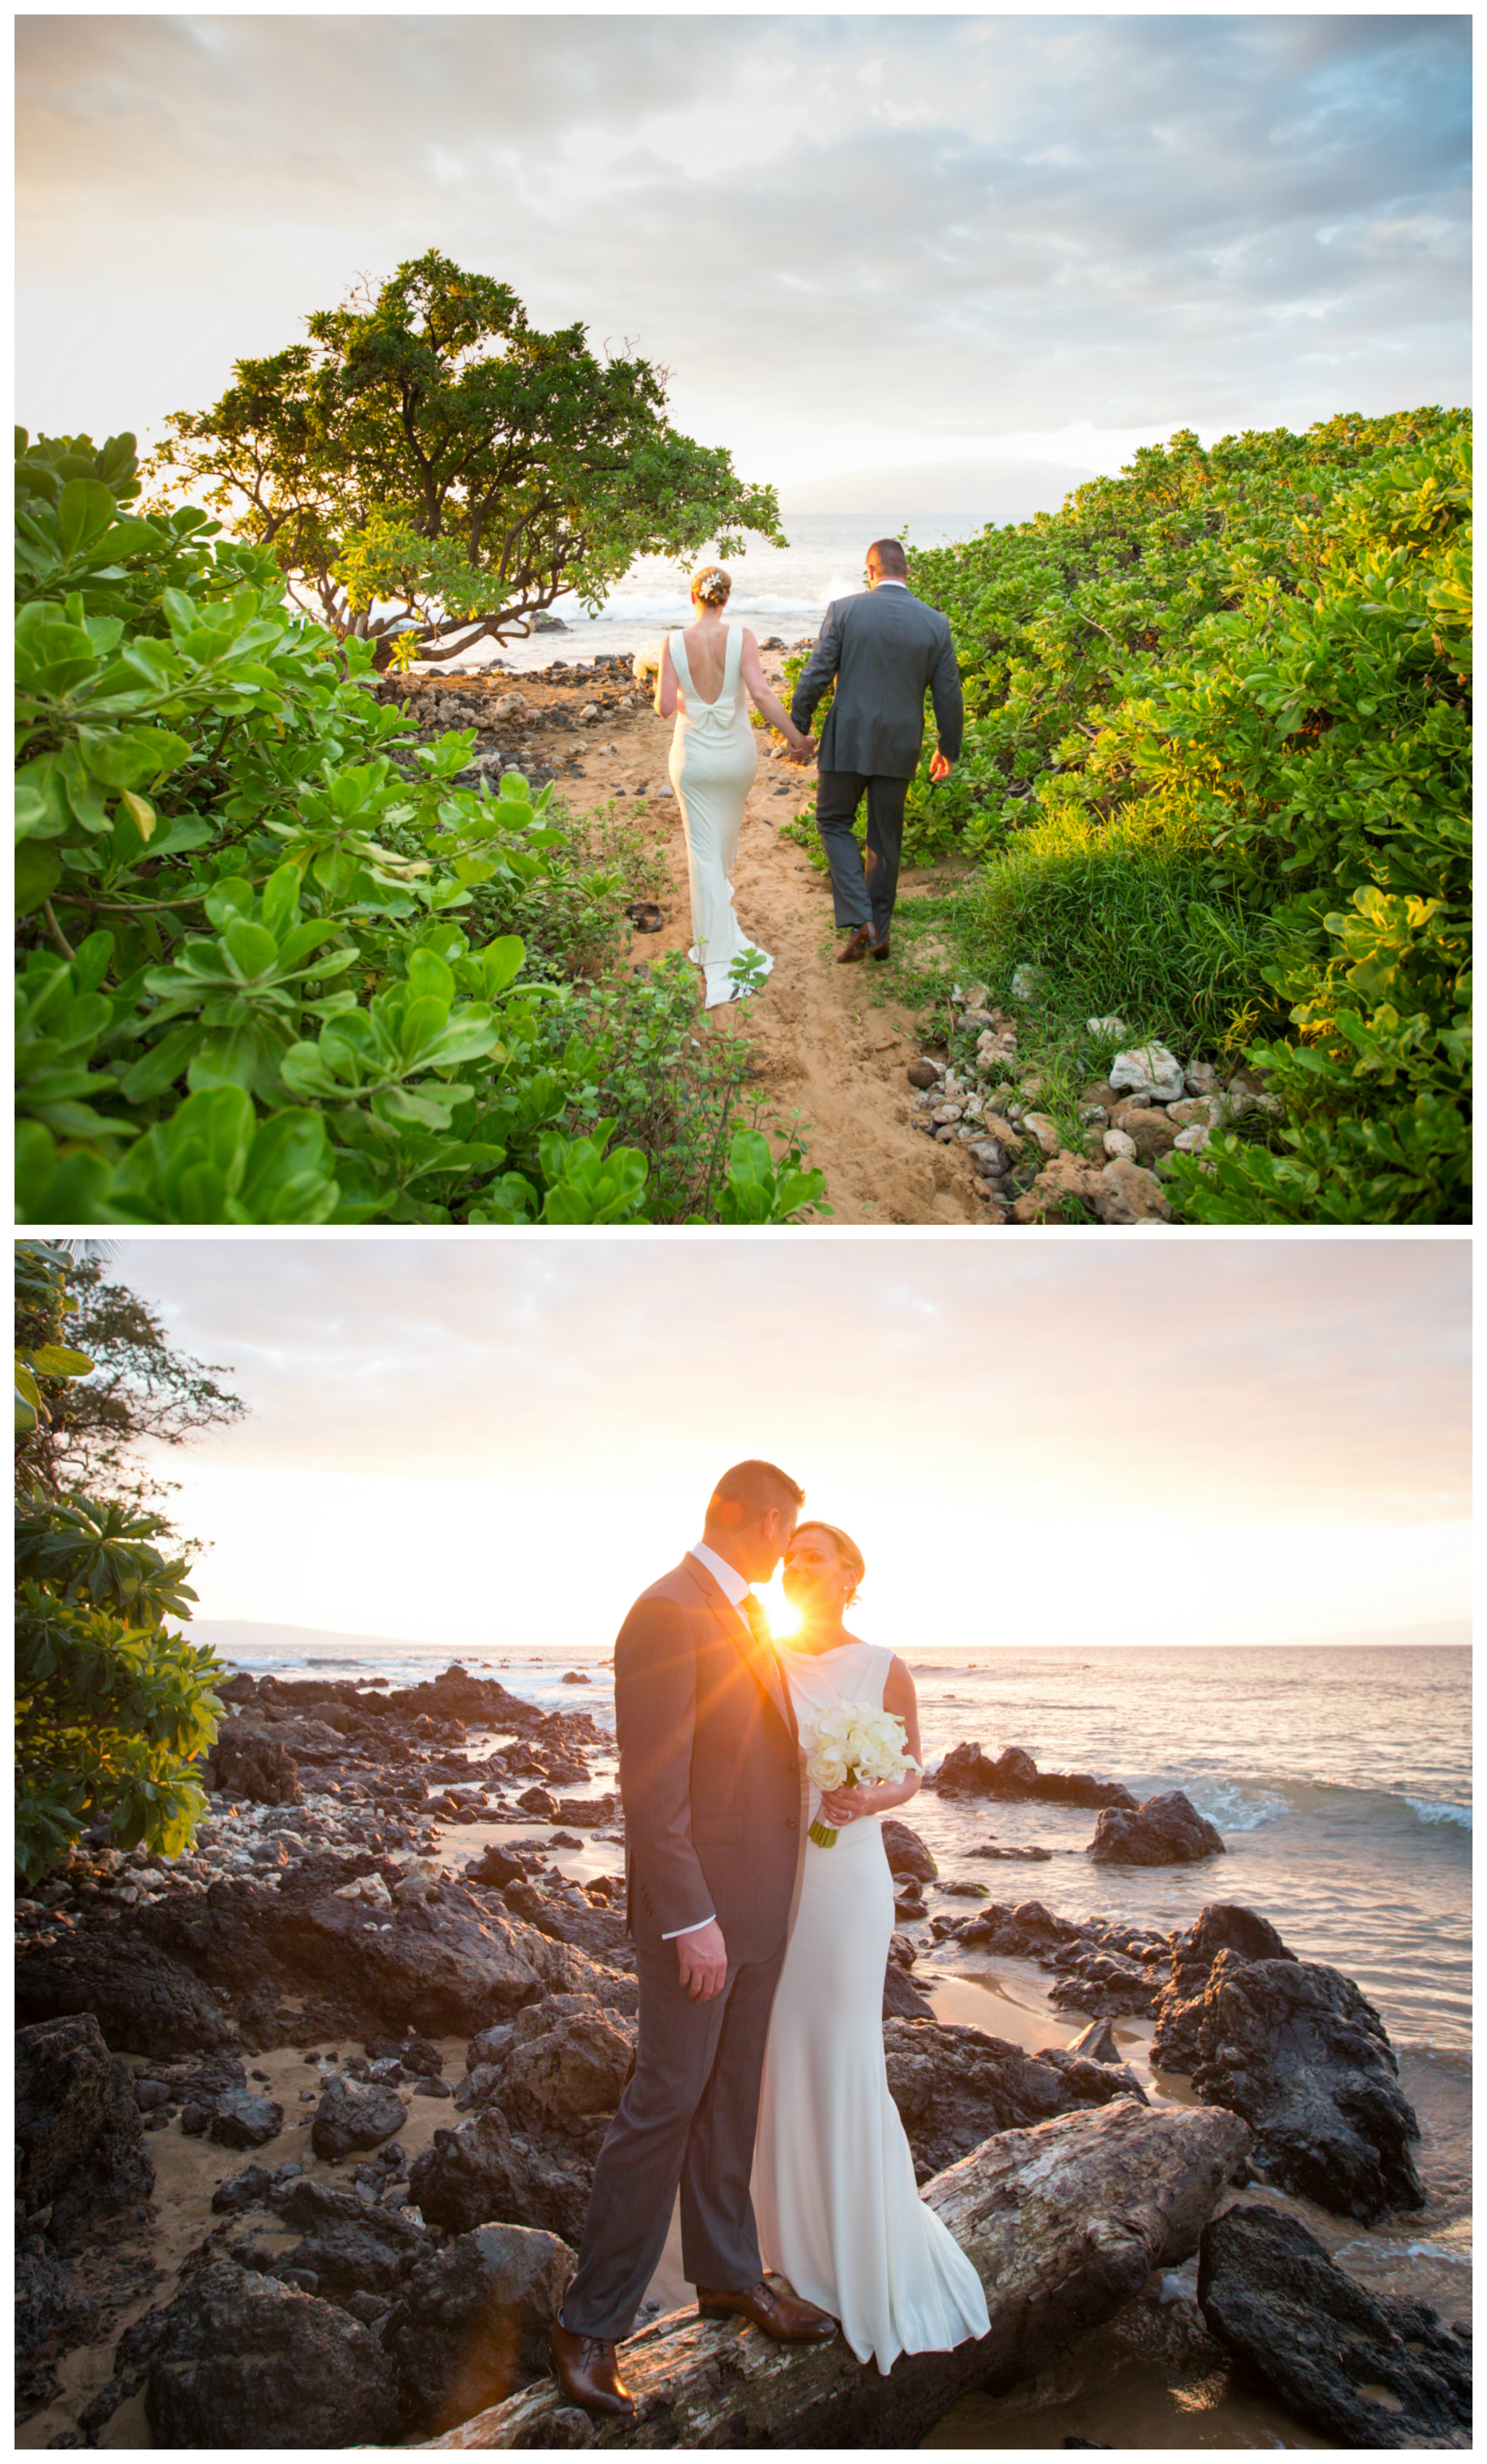 coral weddings hawaii wedding photography pacifc dream photography